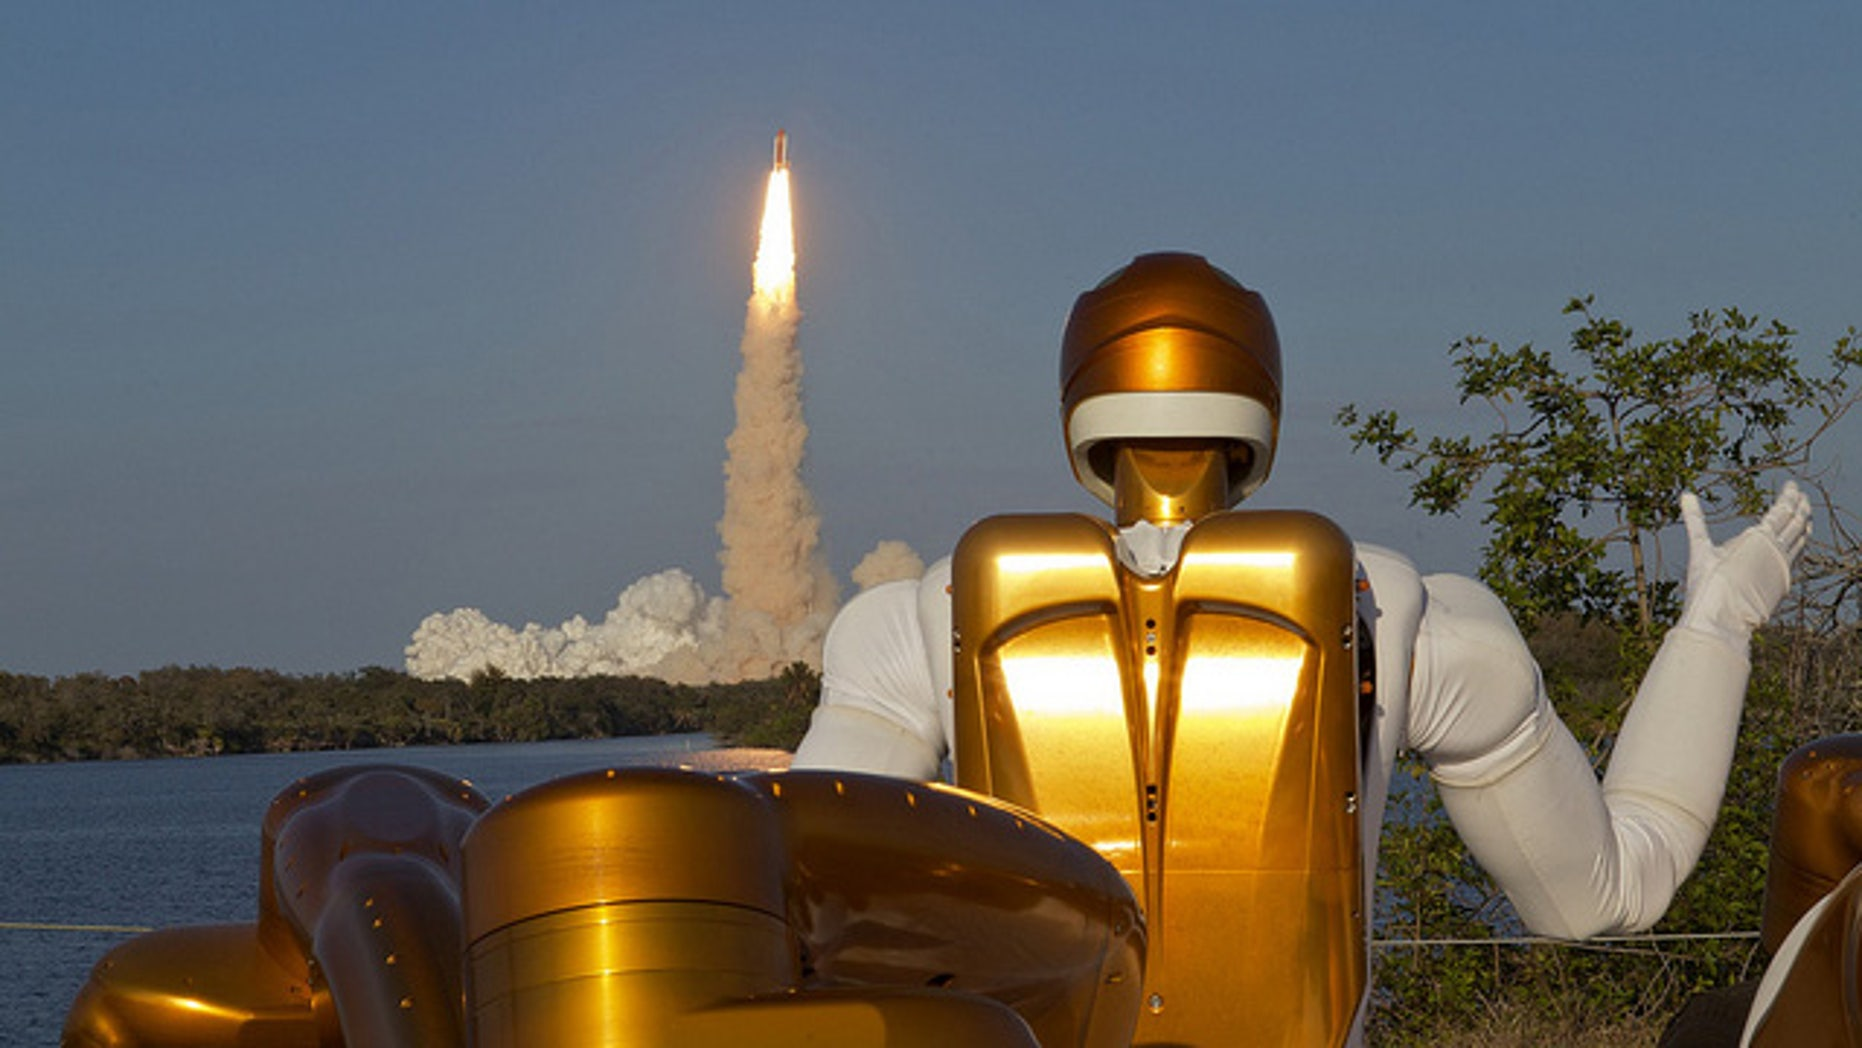 Robonaut R2A waving goodbye as Robonaut R2B launches into space aboard STS-133. R2 is the first humanoid robot in space.